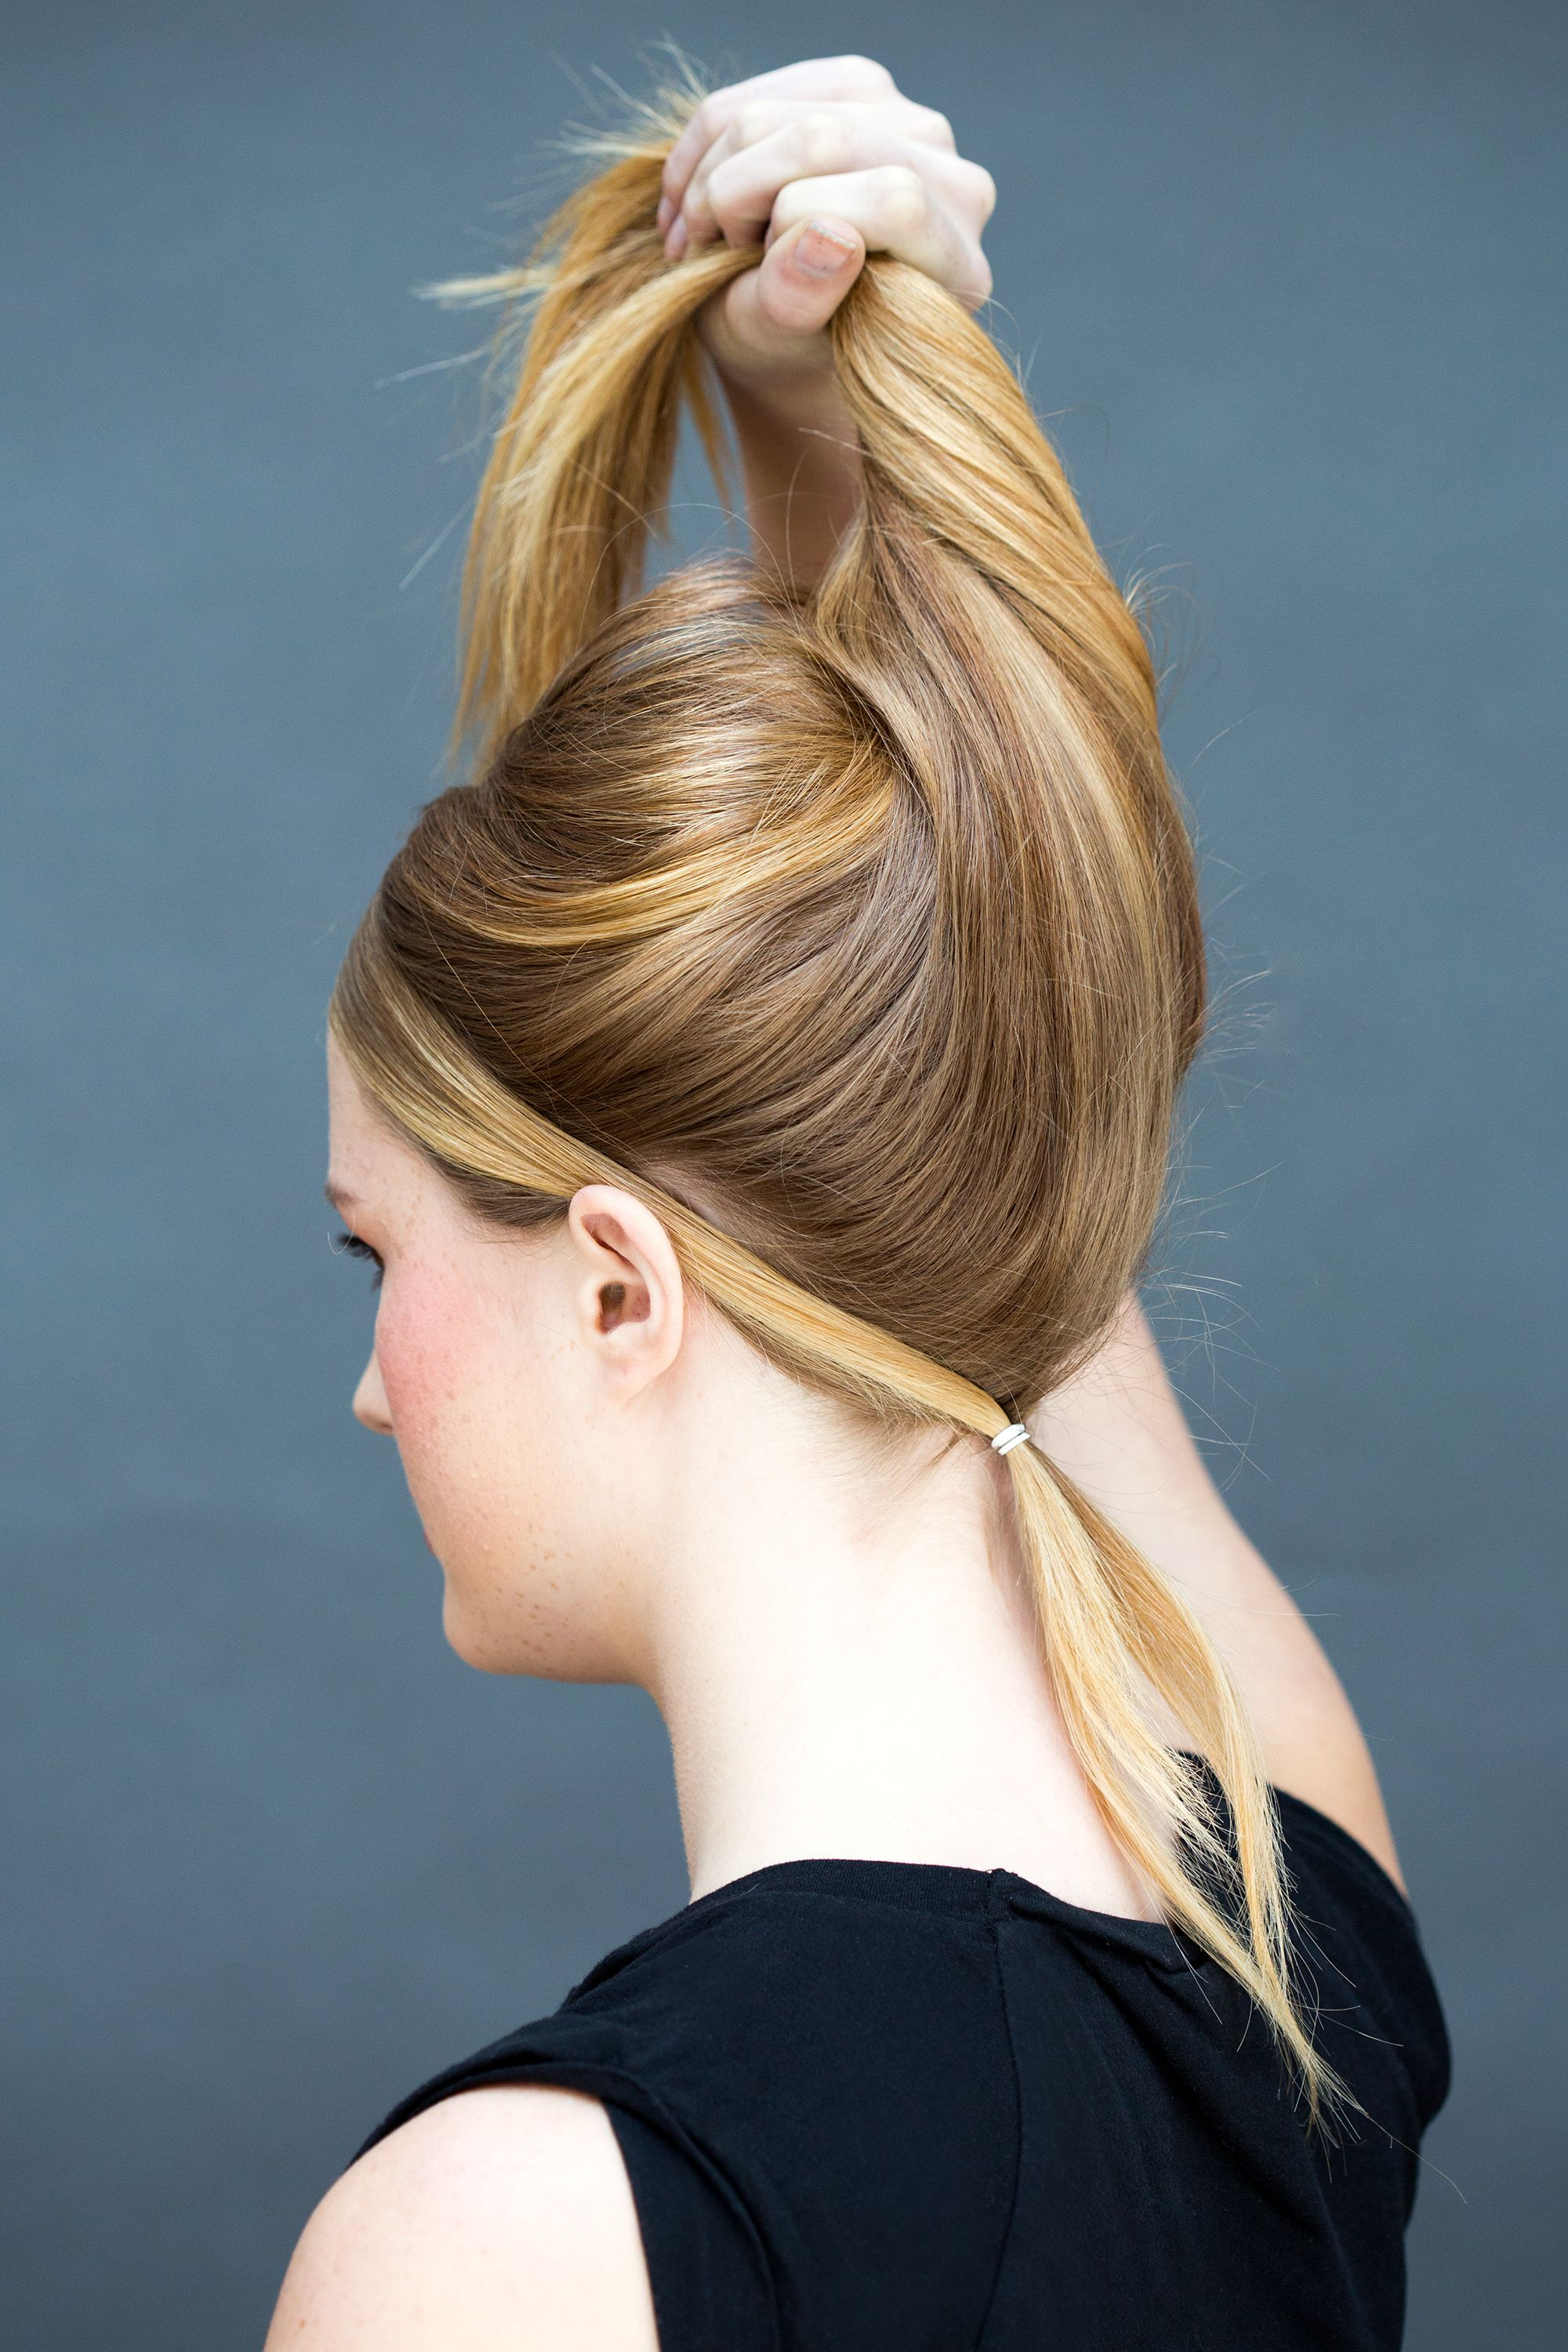 10 Easy Hairstyles You Can Do in 10 Seconds , DIY Hairstyles